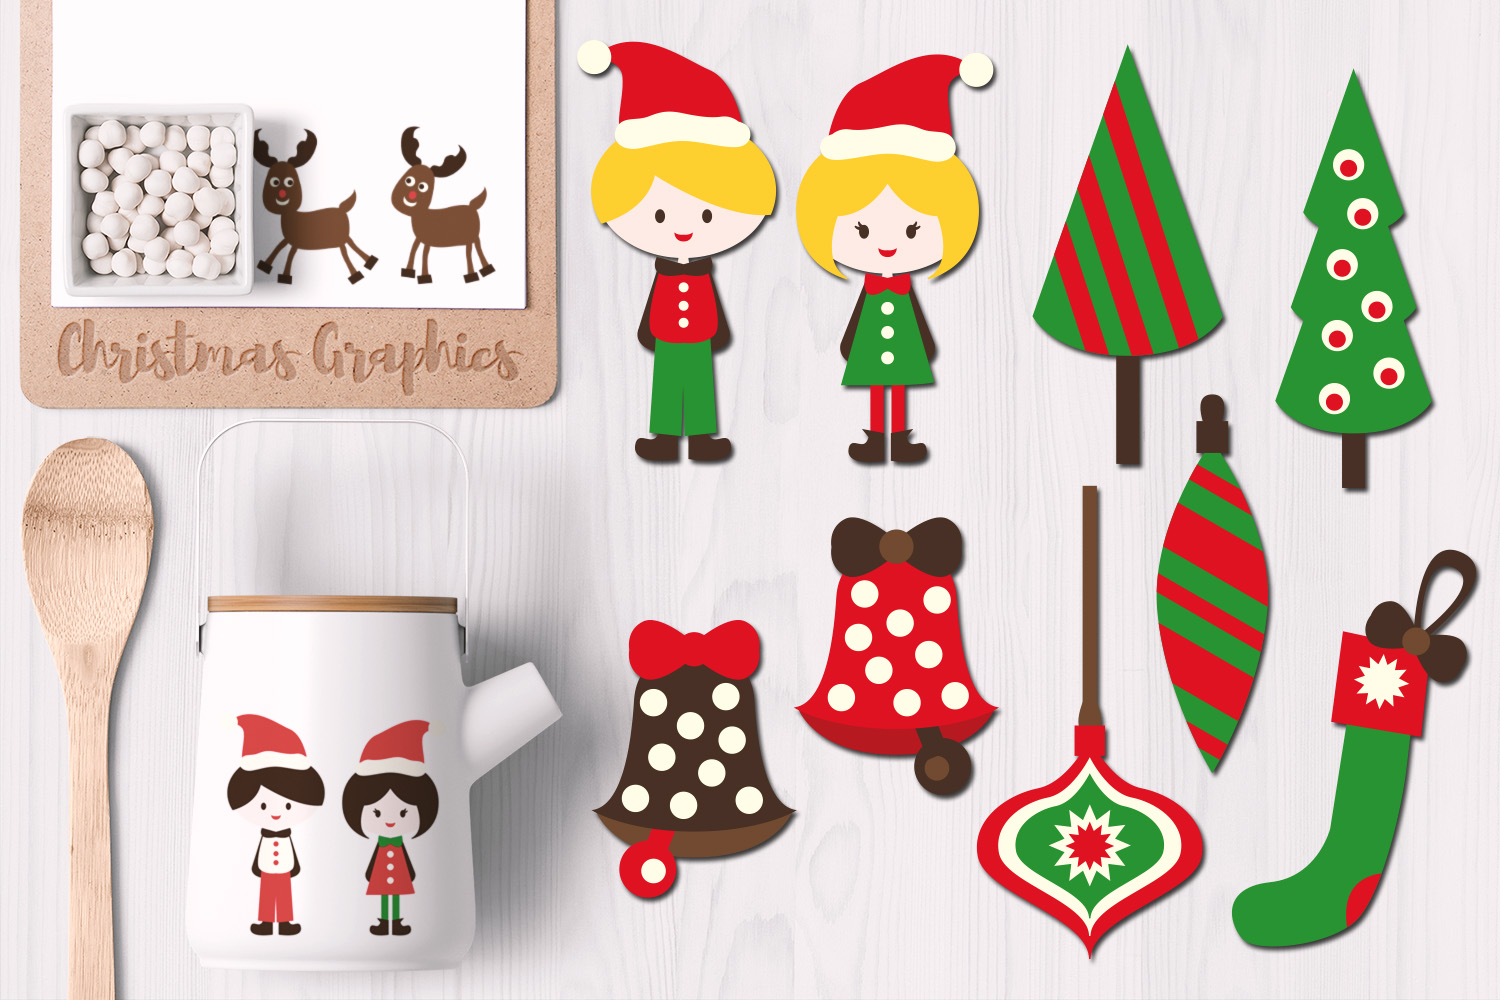 Download Free Christmas Kids And Ornaments Graphic By Revidevi Creative Fabrica for Cricut Explore, Silhouette and other cutting machines.